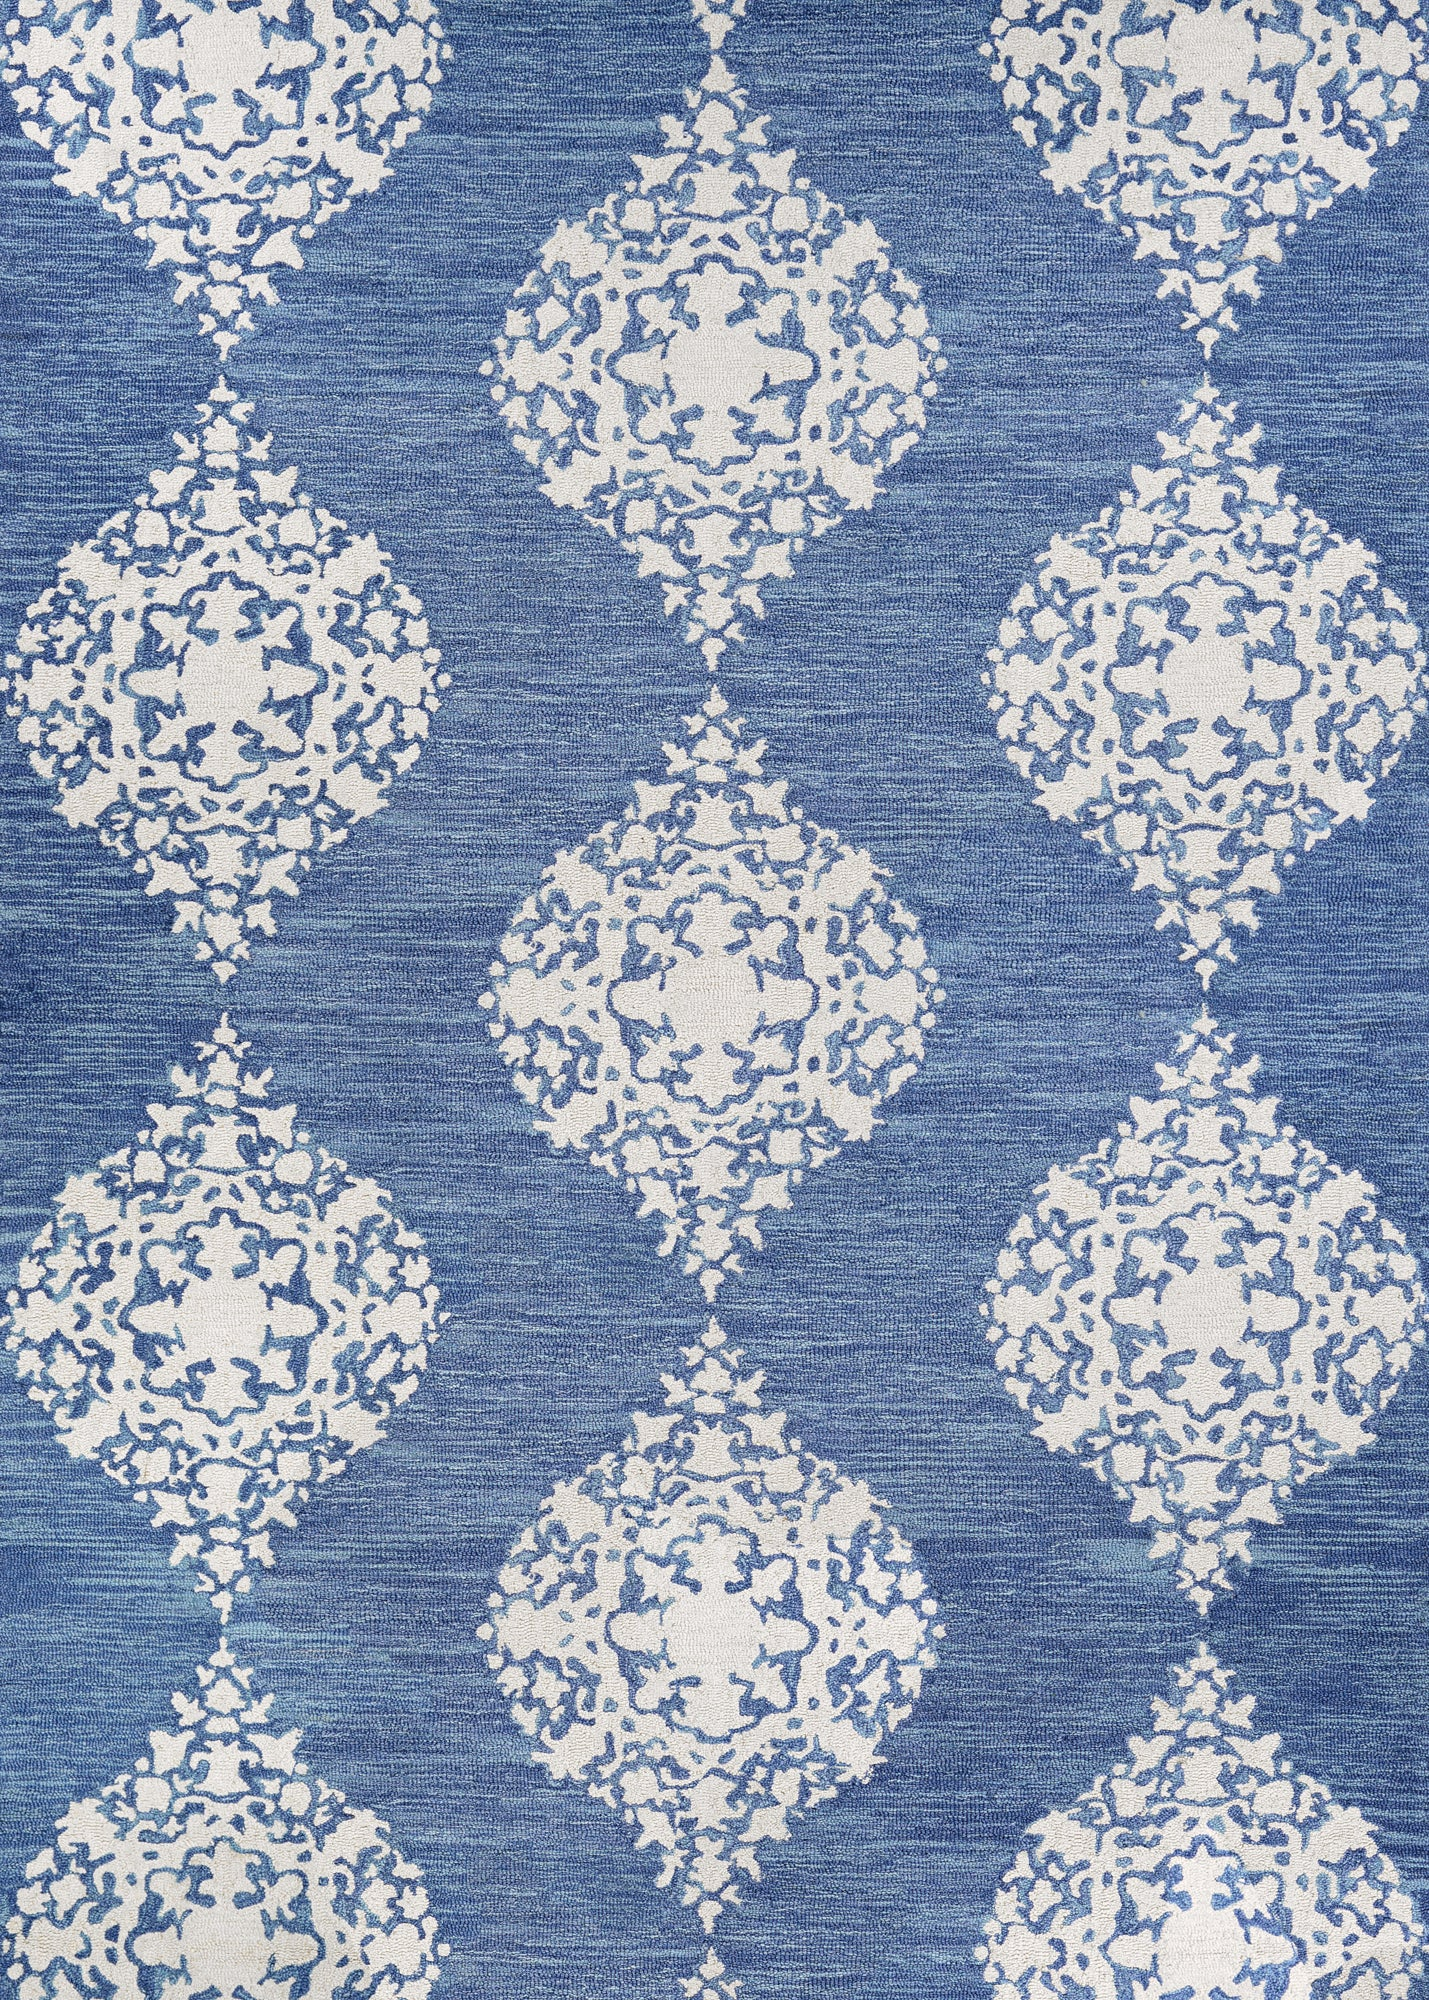 Couristan Crawford Ornament Blue Jay/Ivory Area Rug main image